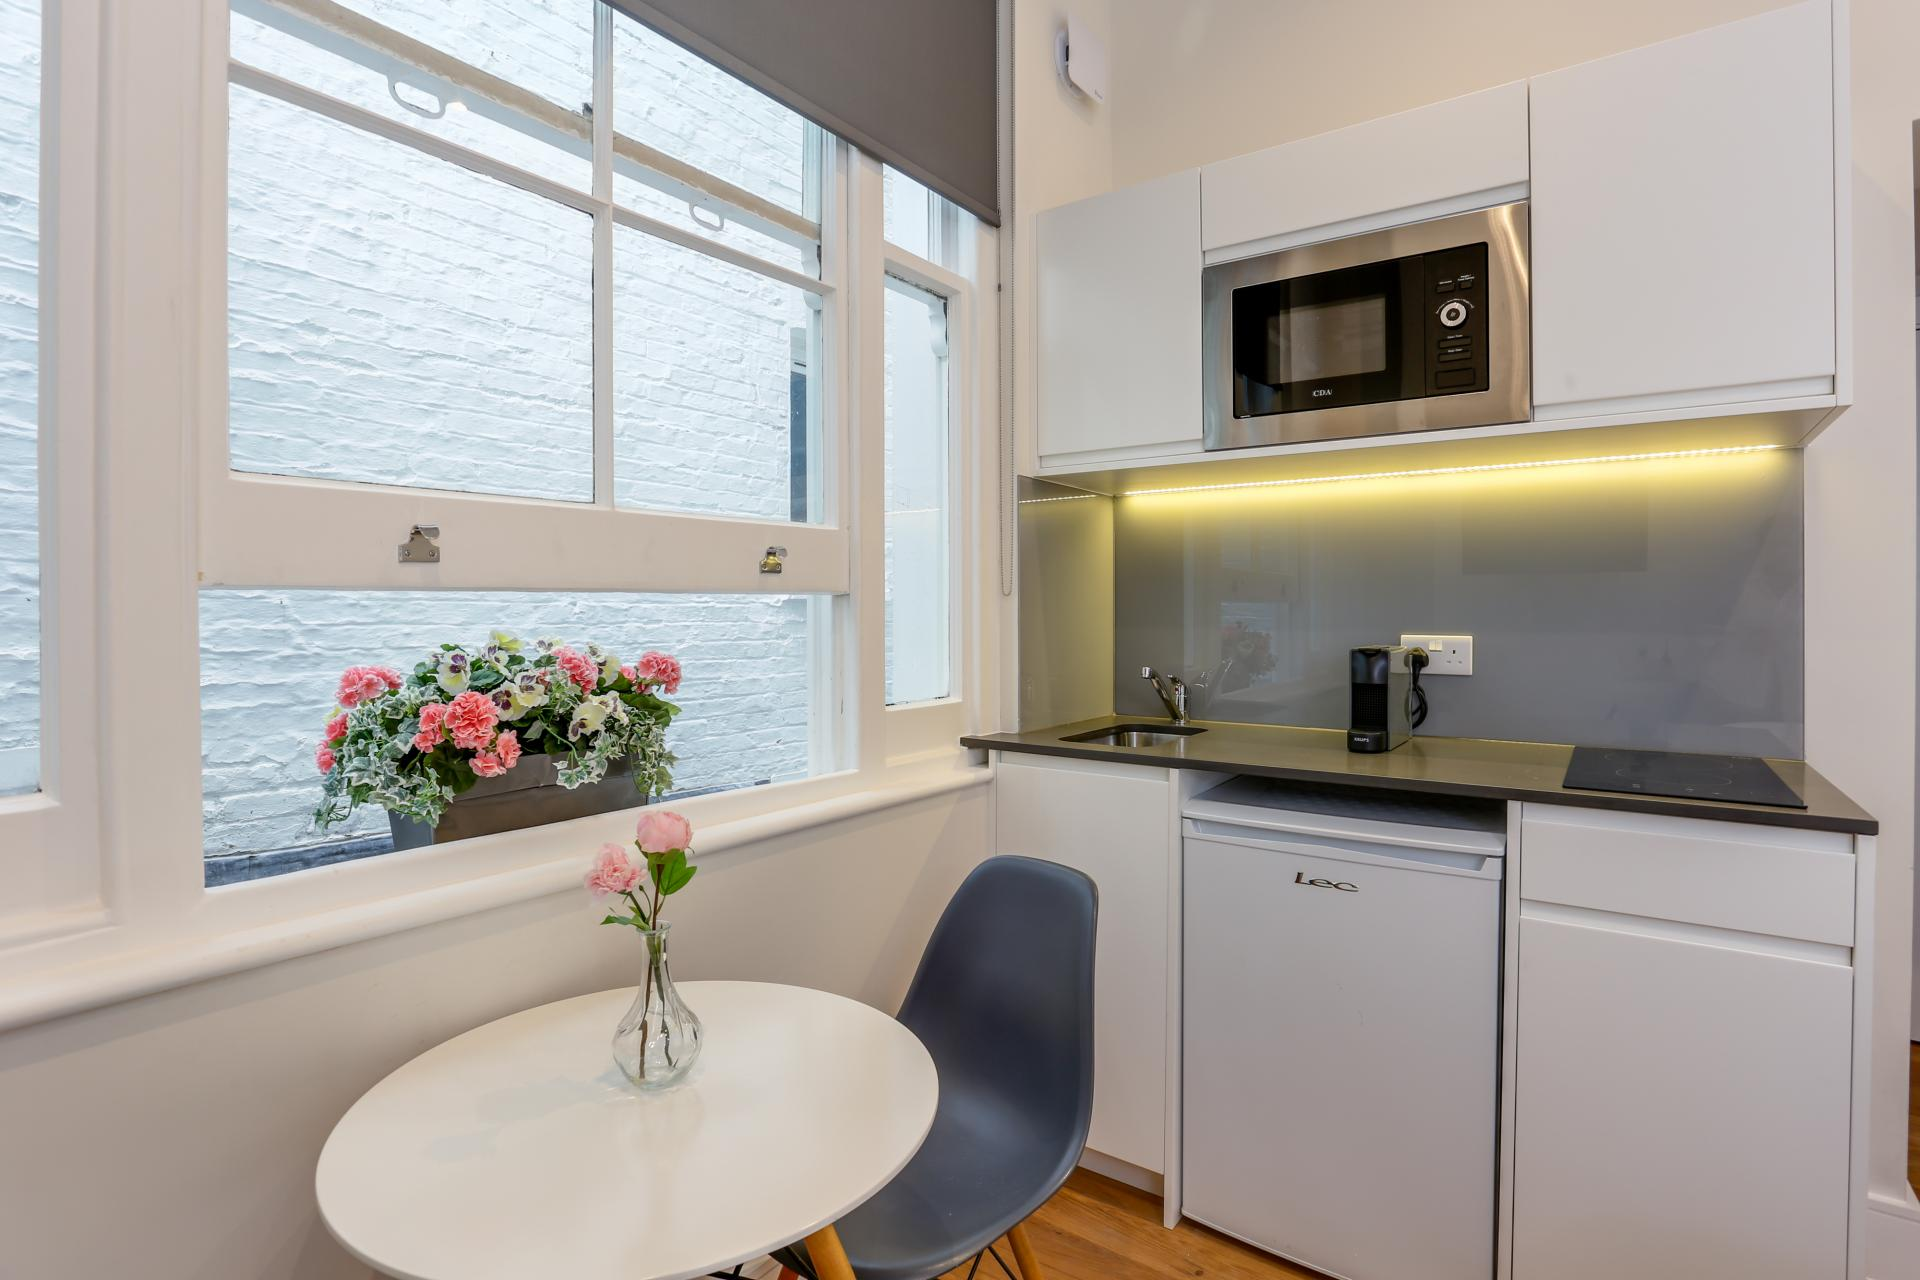 Microwave at Queensborough Terrace, Bayswater, London - Citybase Apartments